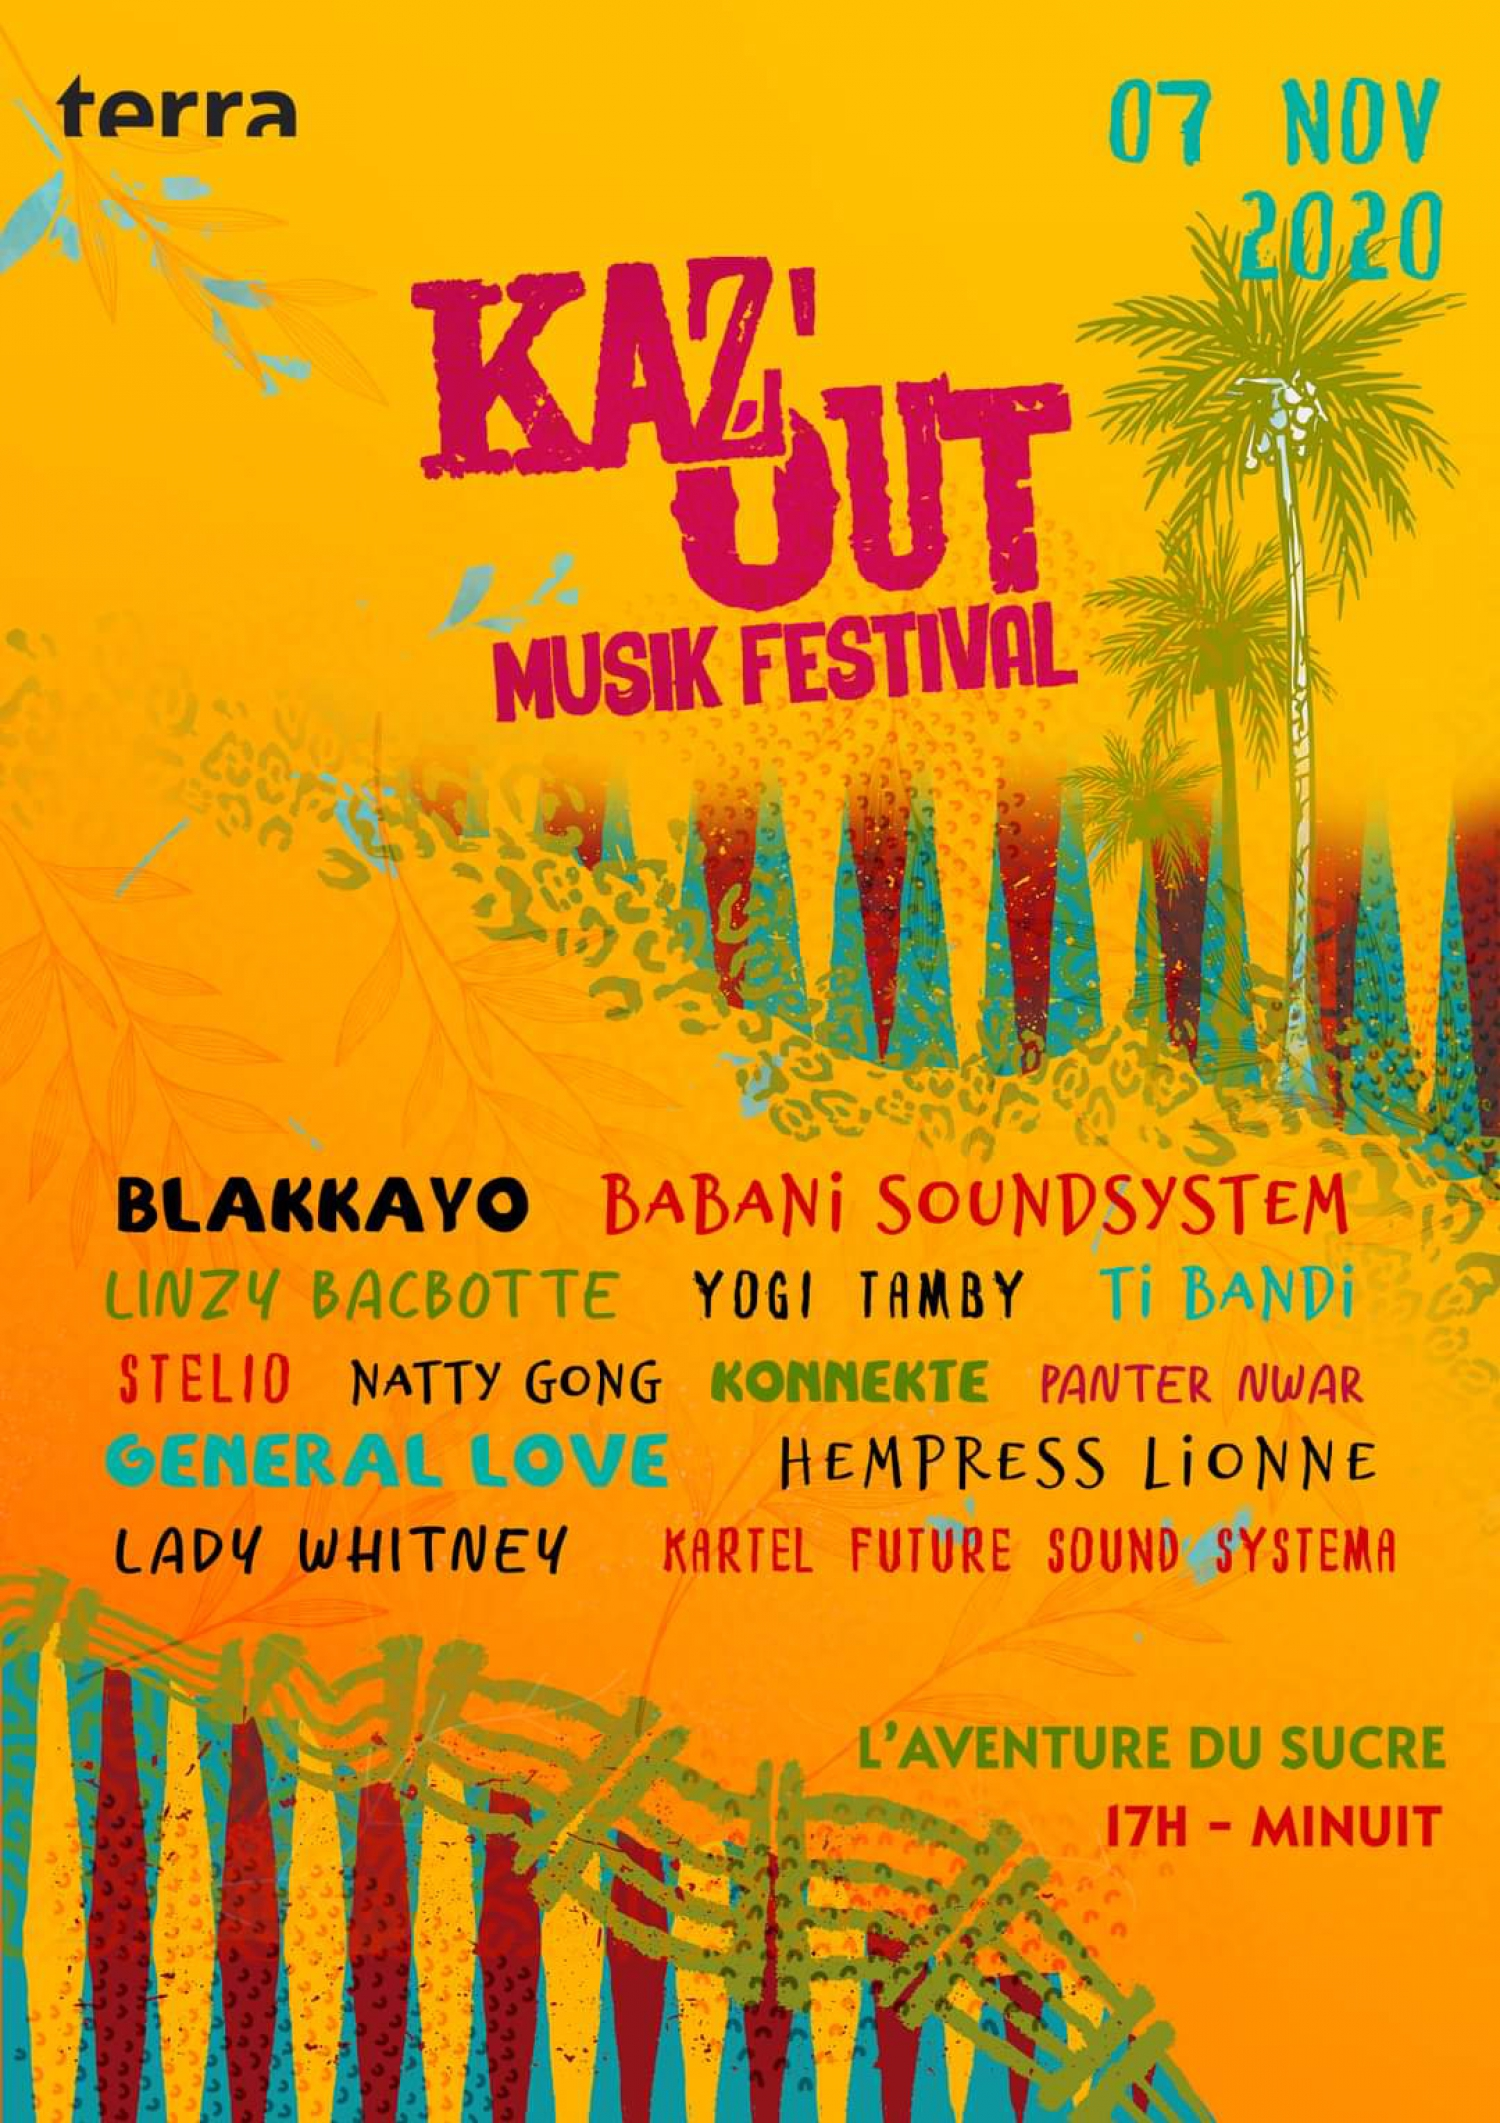 Line-up for Kaz Out Festival 2020